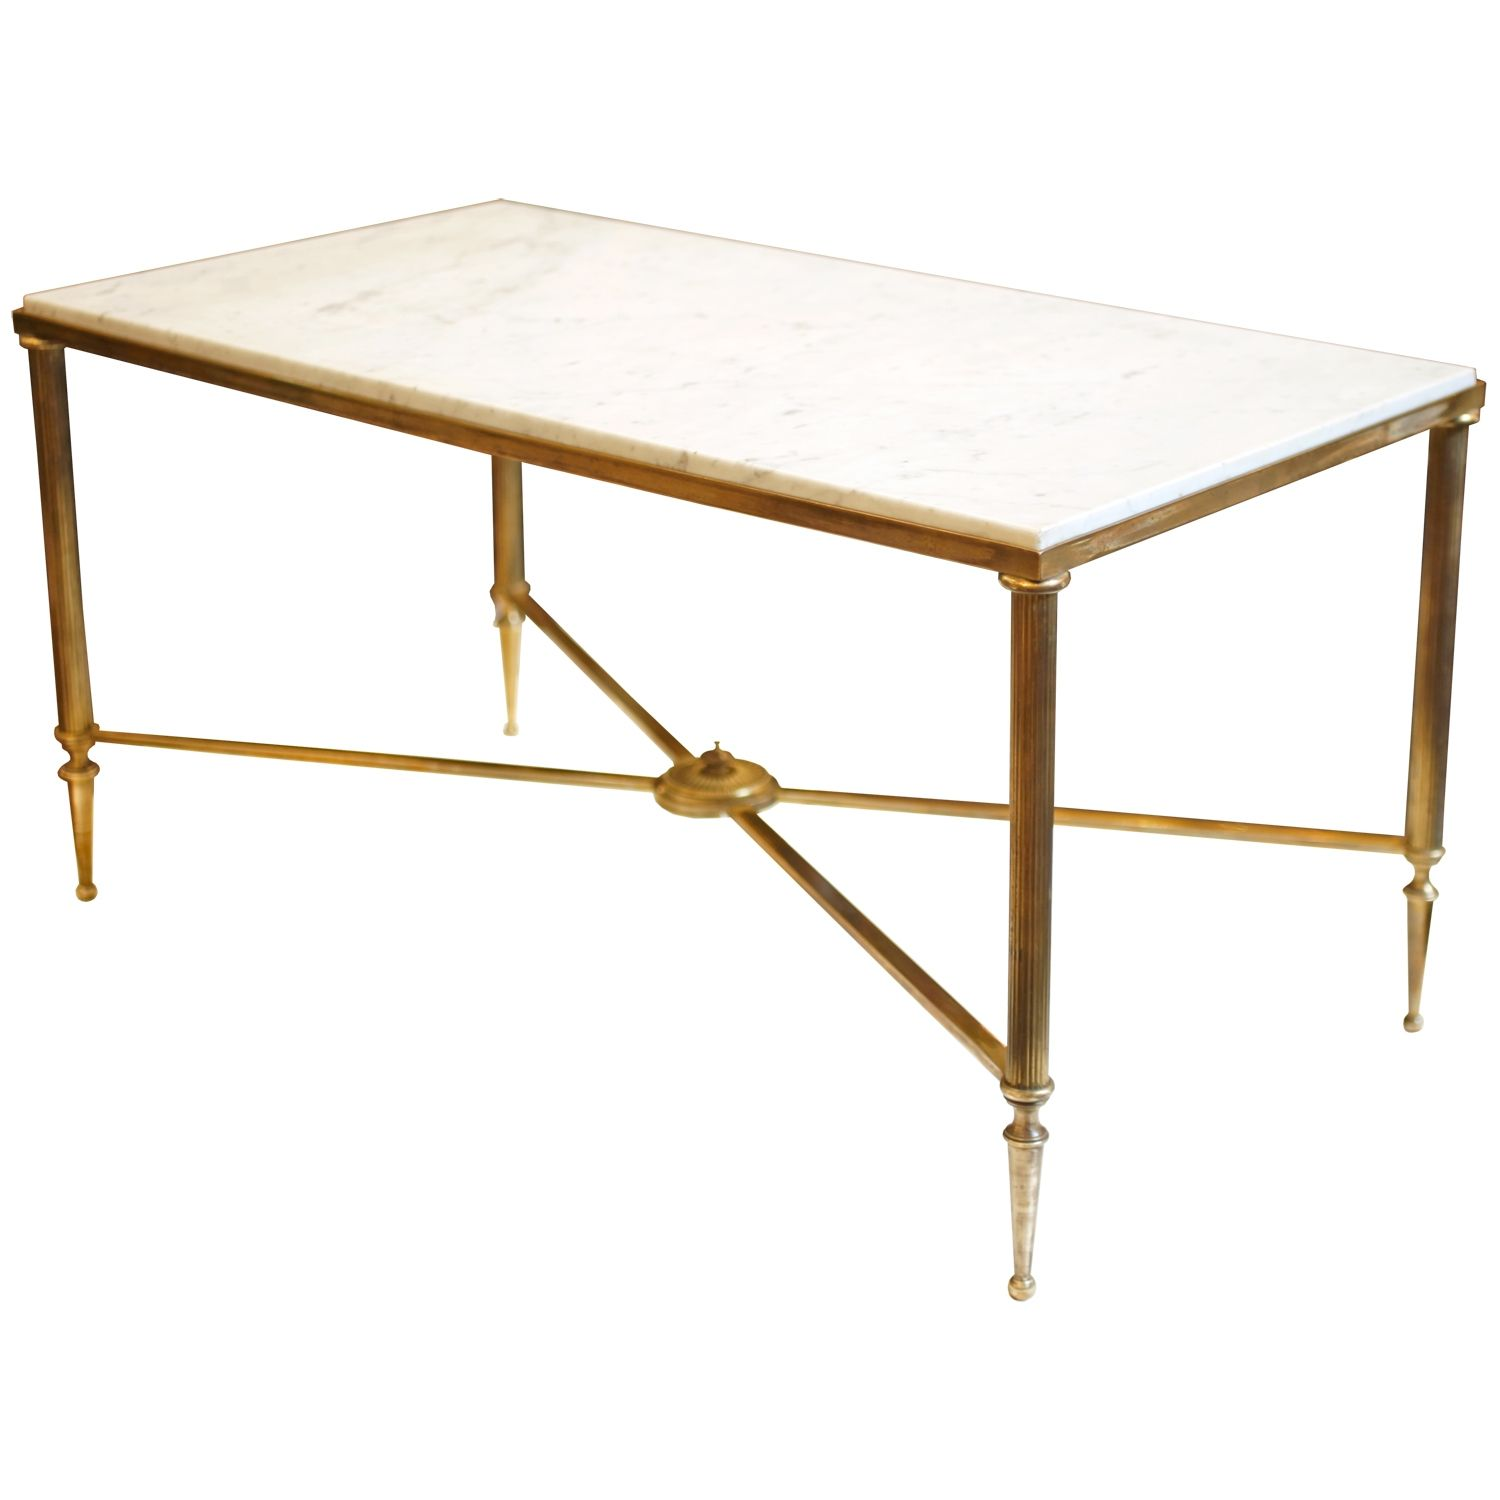 Antique Brass Coffee Table Base Httptherapybychancecom - Coffee table base for marble top